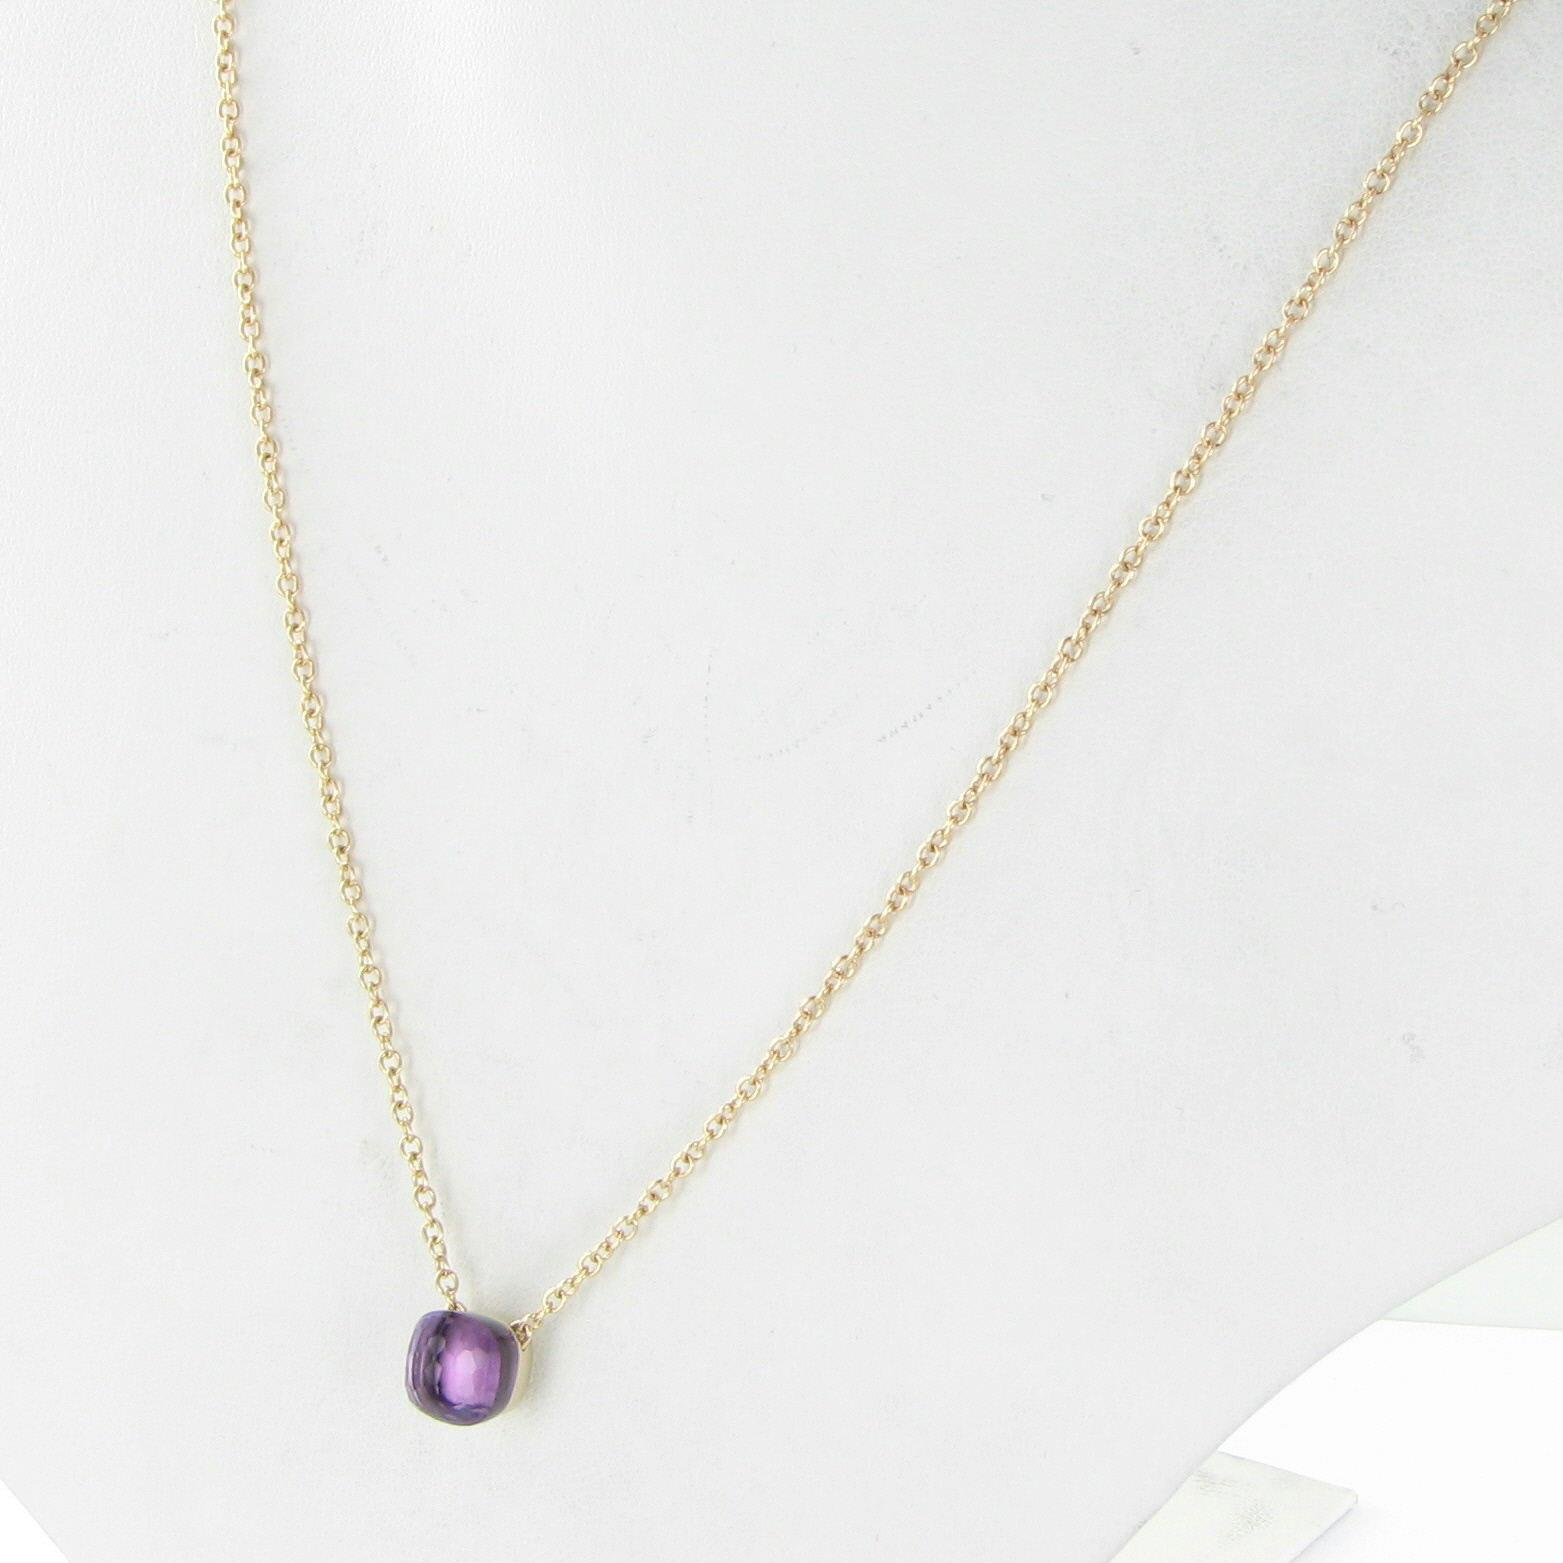 POMELLATO Nudo 18k Rose Gold Amethyst Pendant Necklace